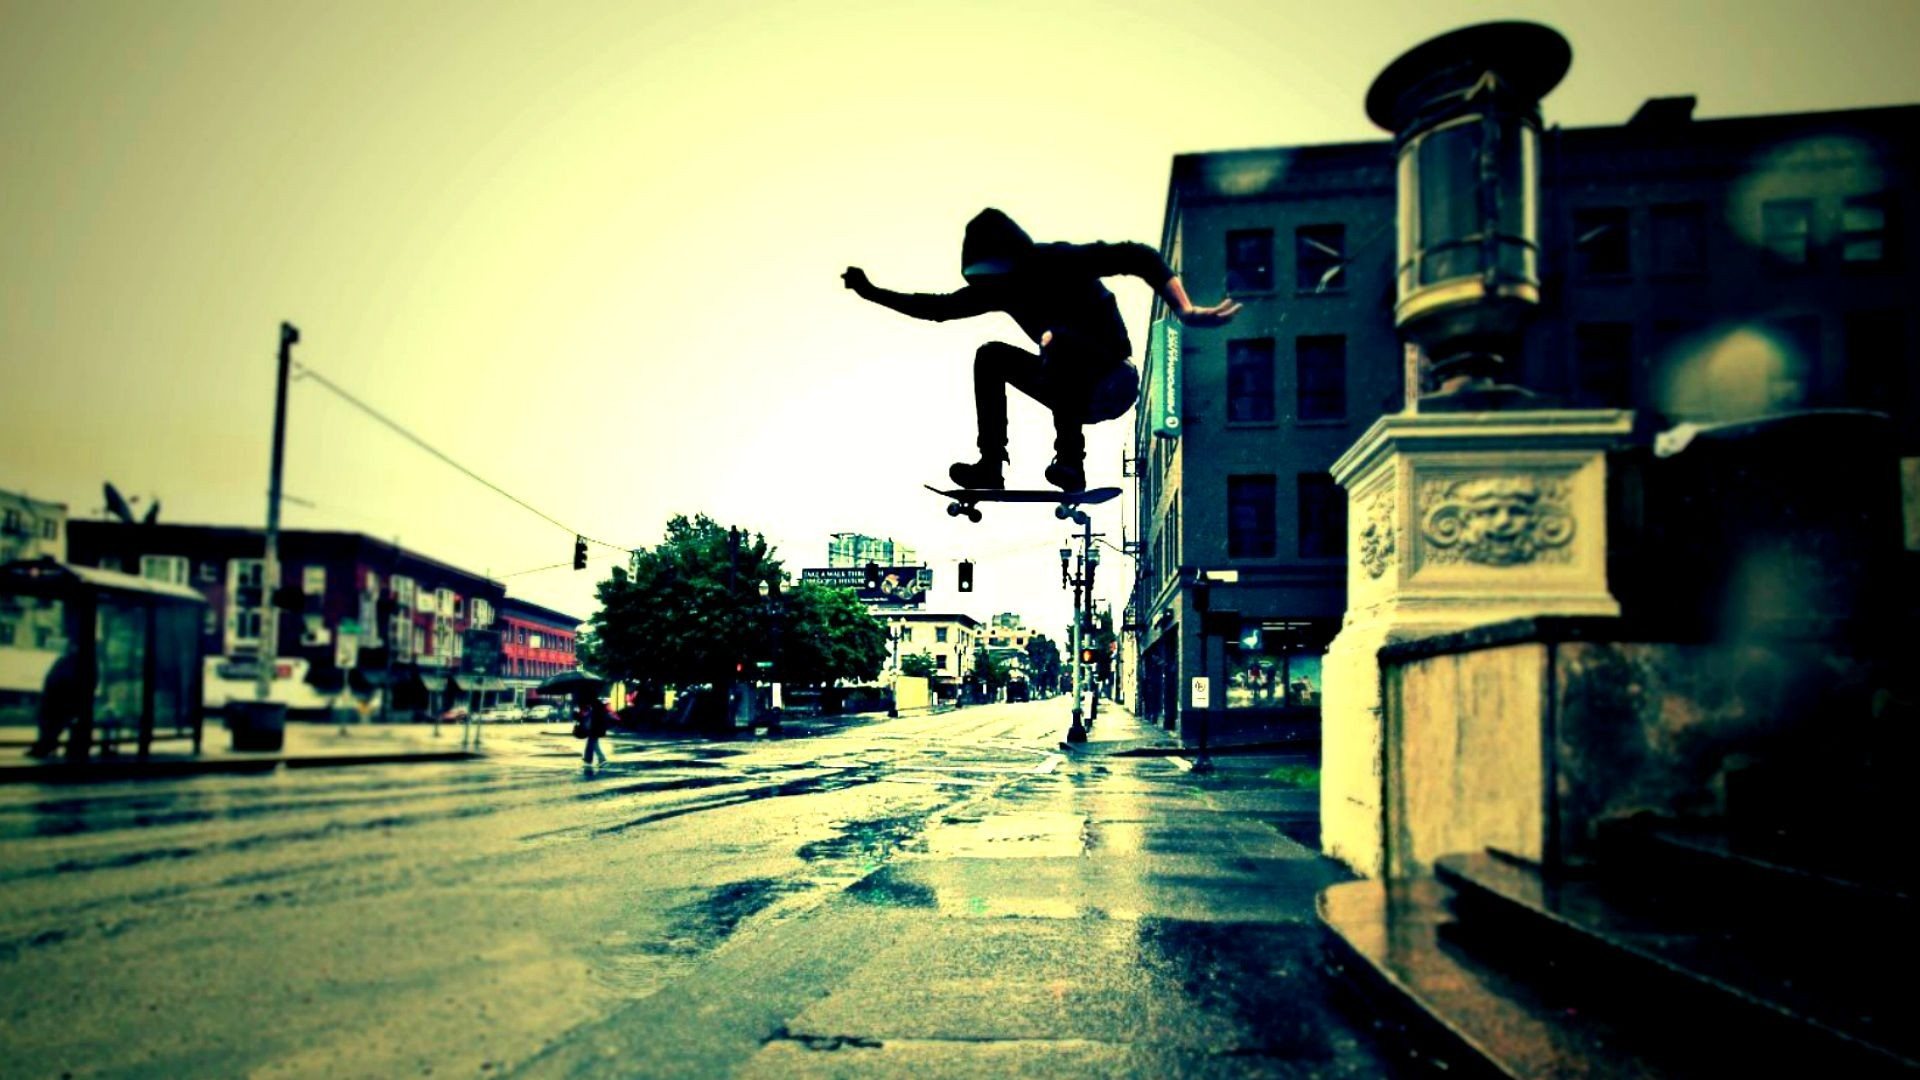 Urban Skateboard Trick   High Definition Wallpapers   HD wallpapers 1920x1080